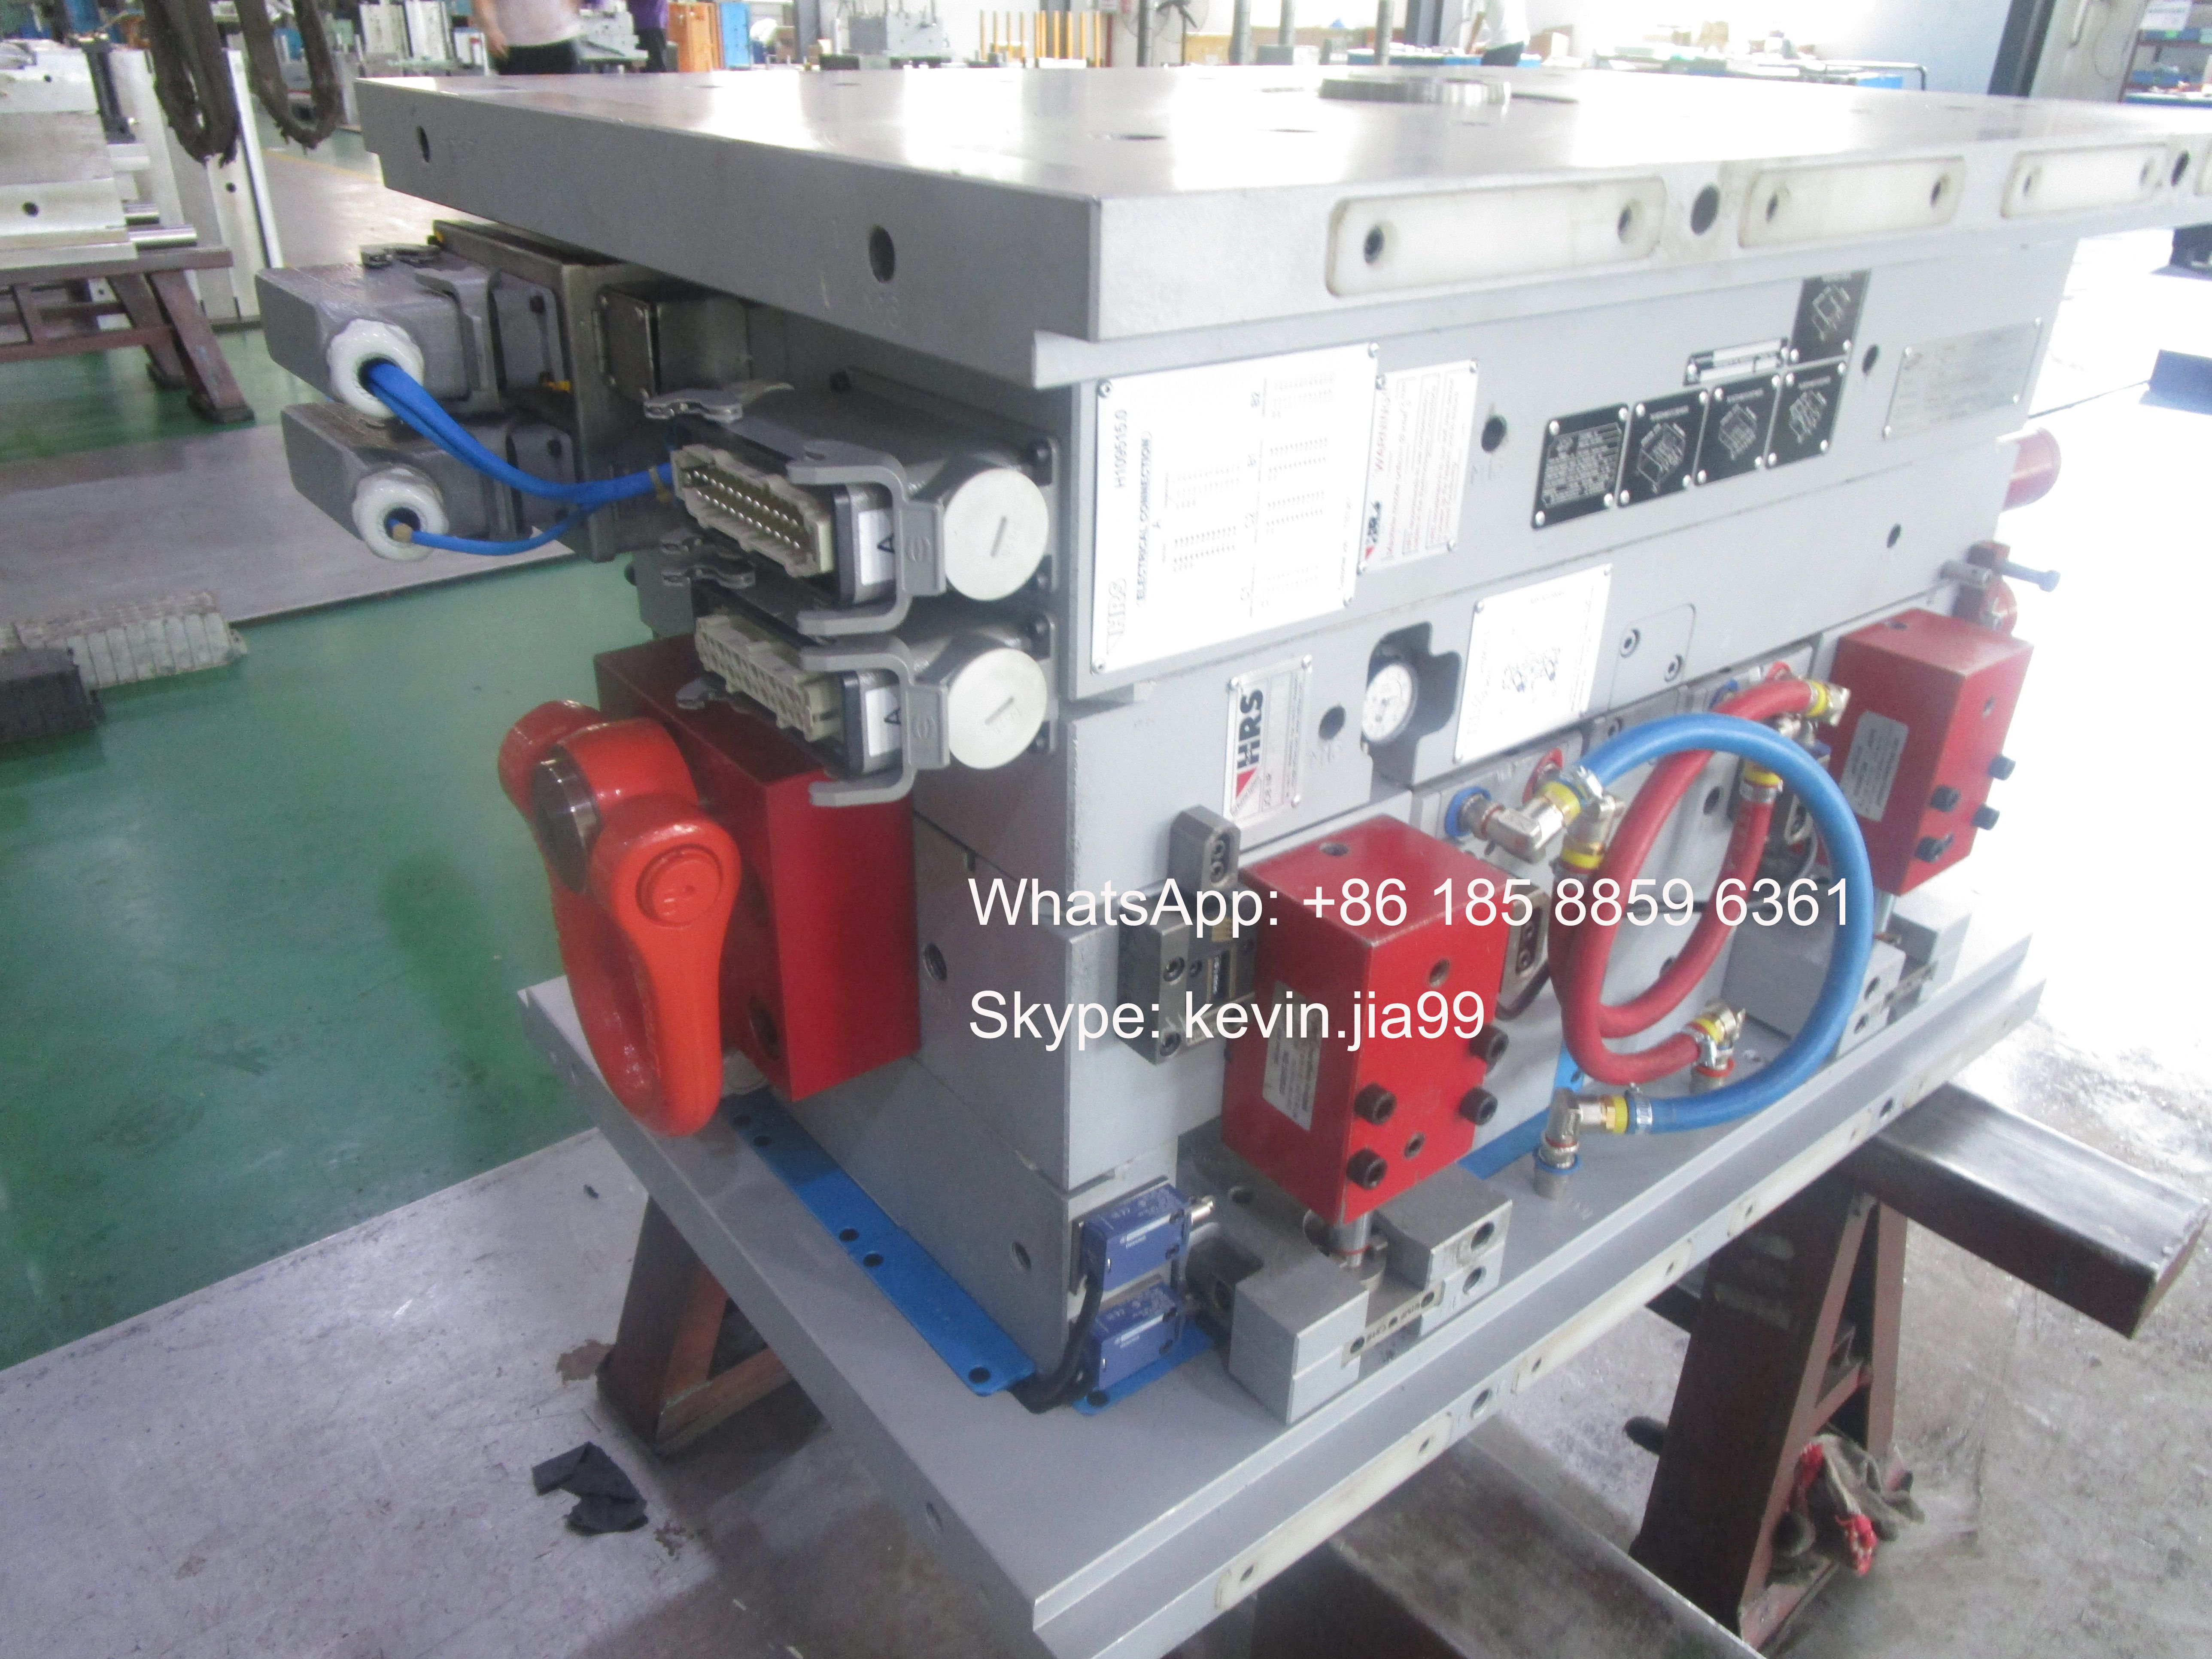 Plastic injection mold maker in China | Plastic injection mold